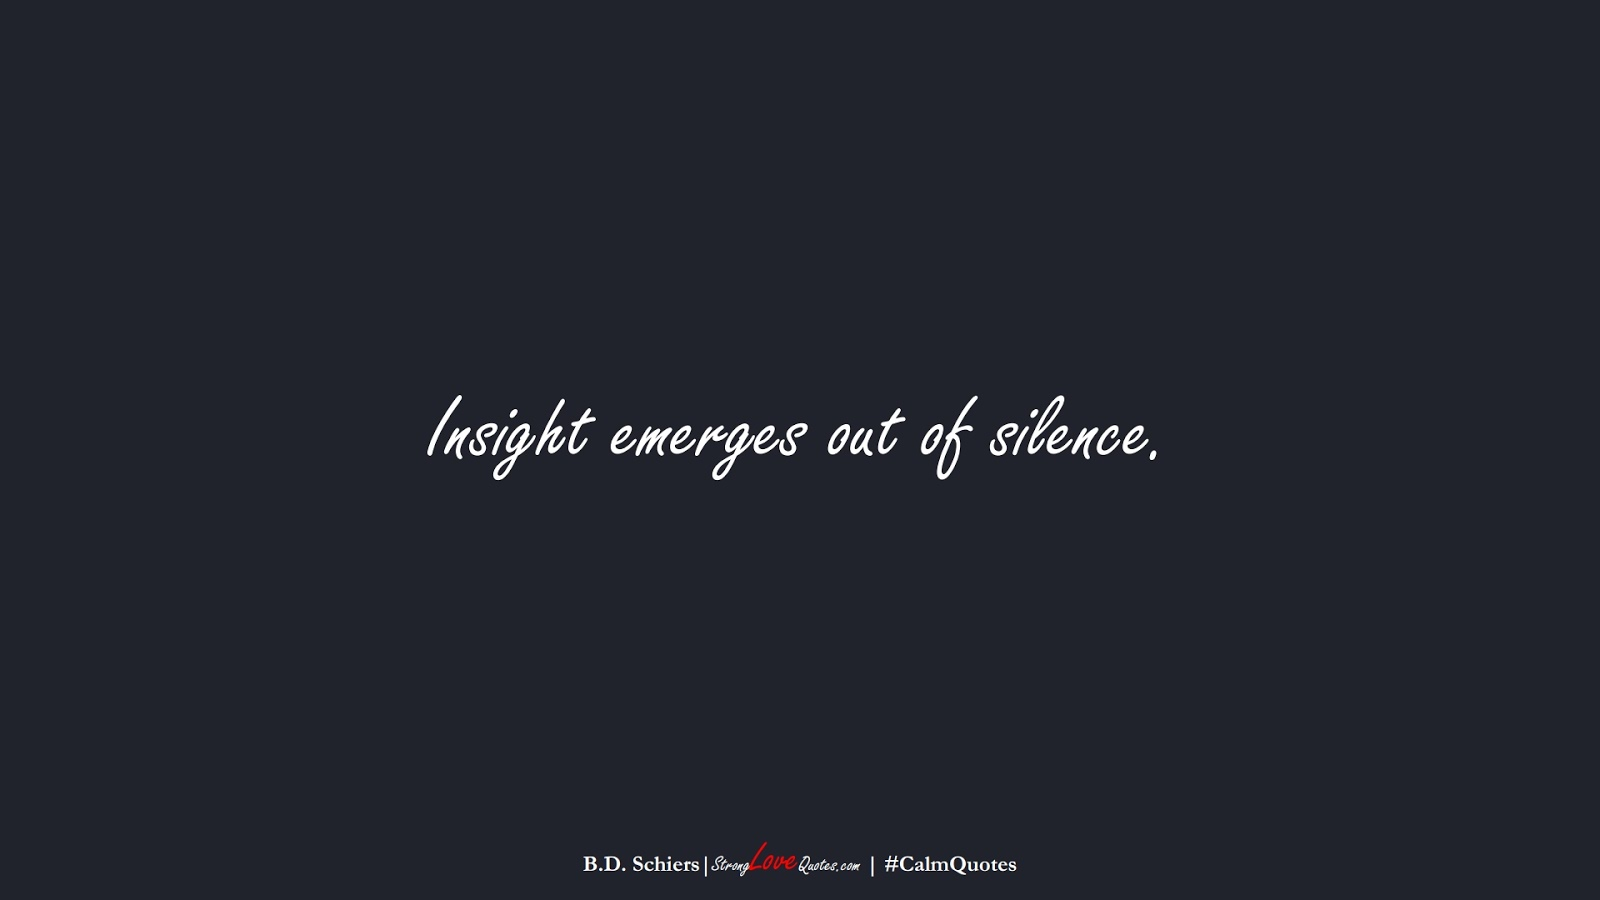 Insight emerges out of silence. (B.D. Schiers);  #CalmQuotes